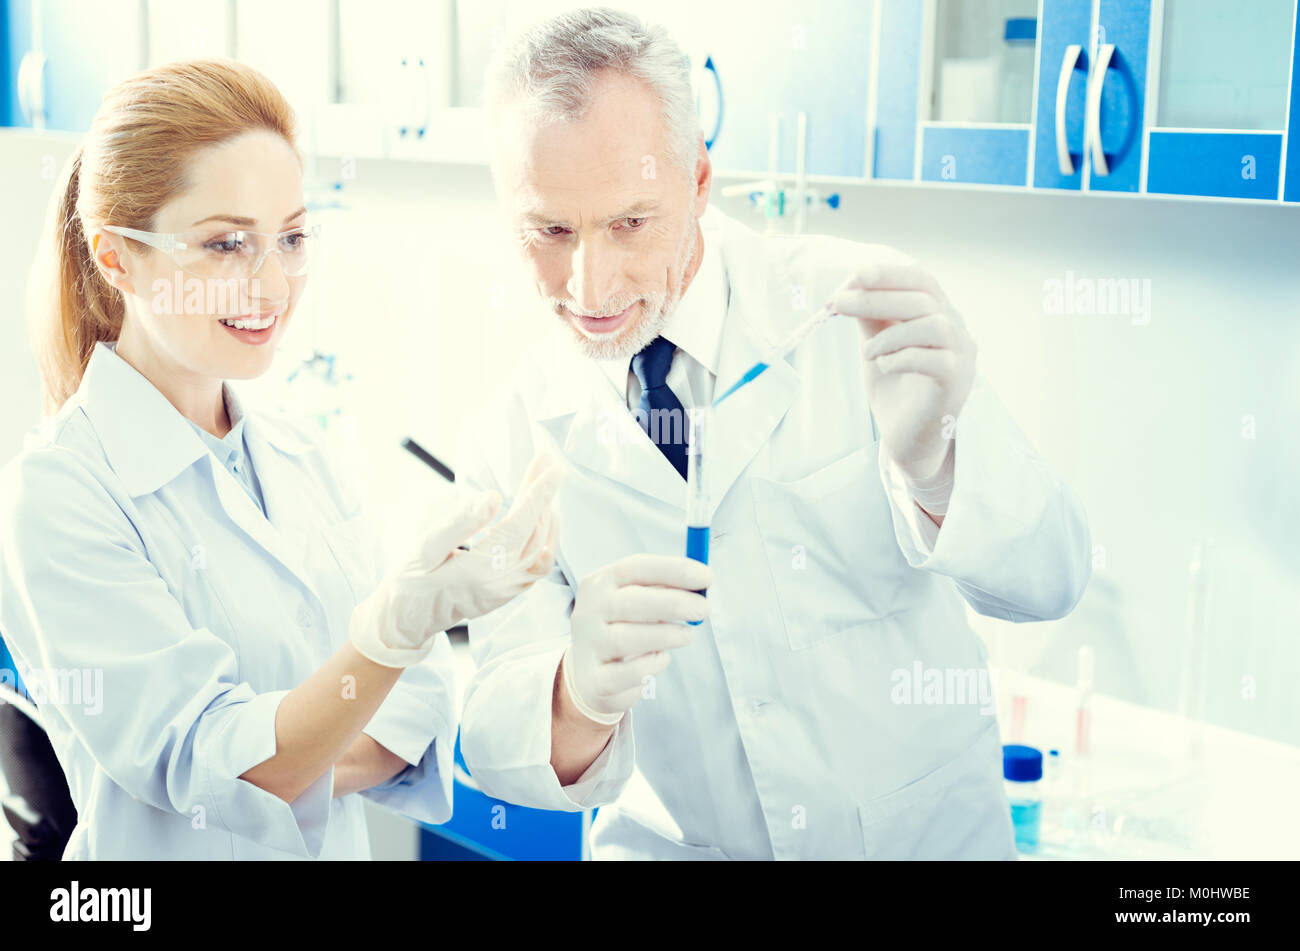 Mature scientist doing research together in lab - Stock Image